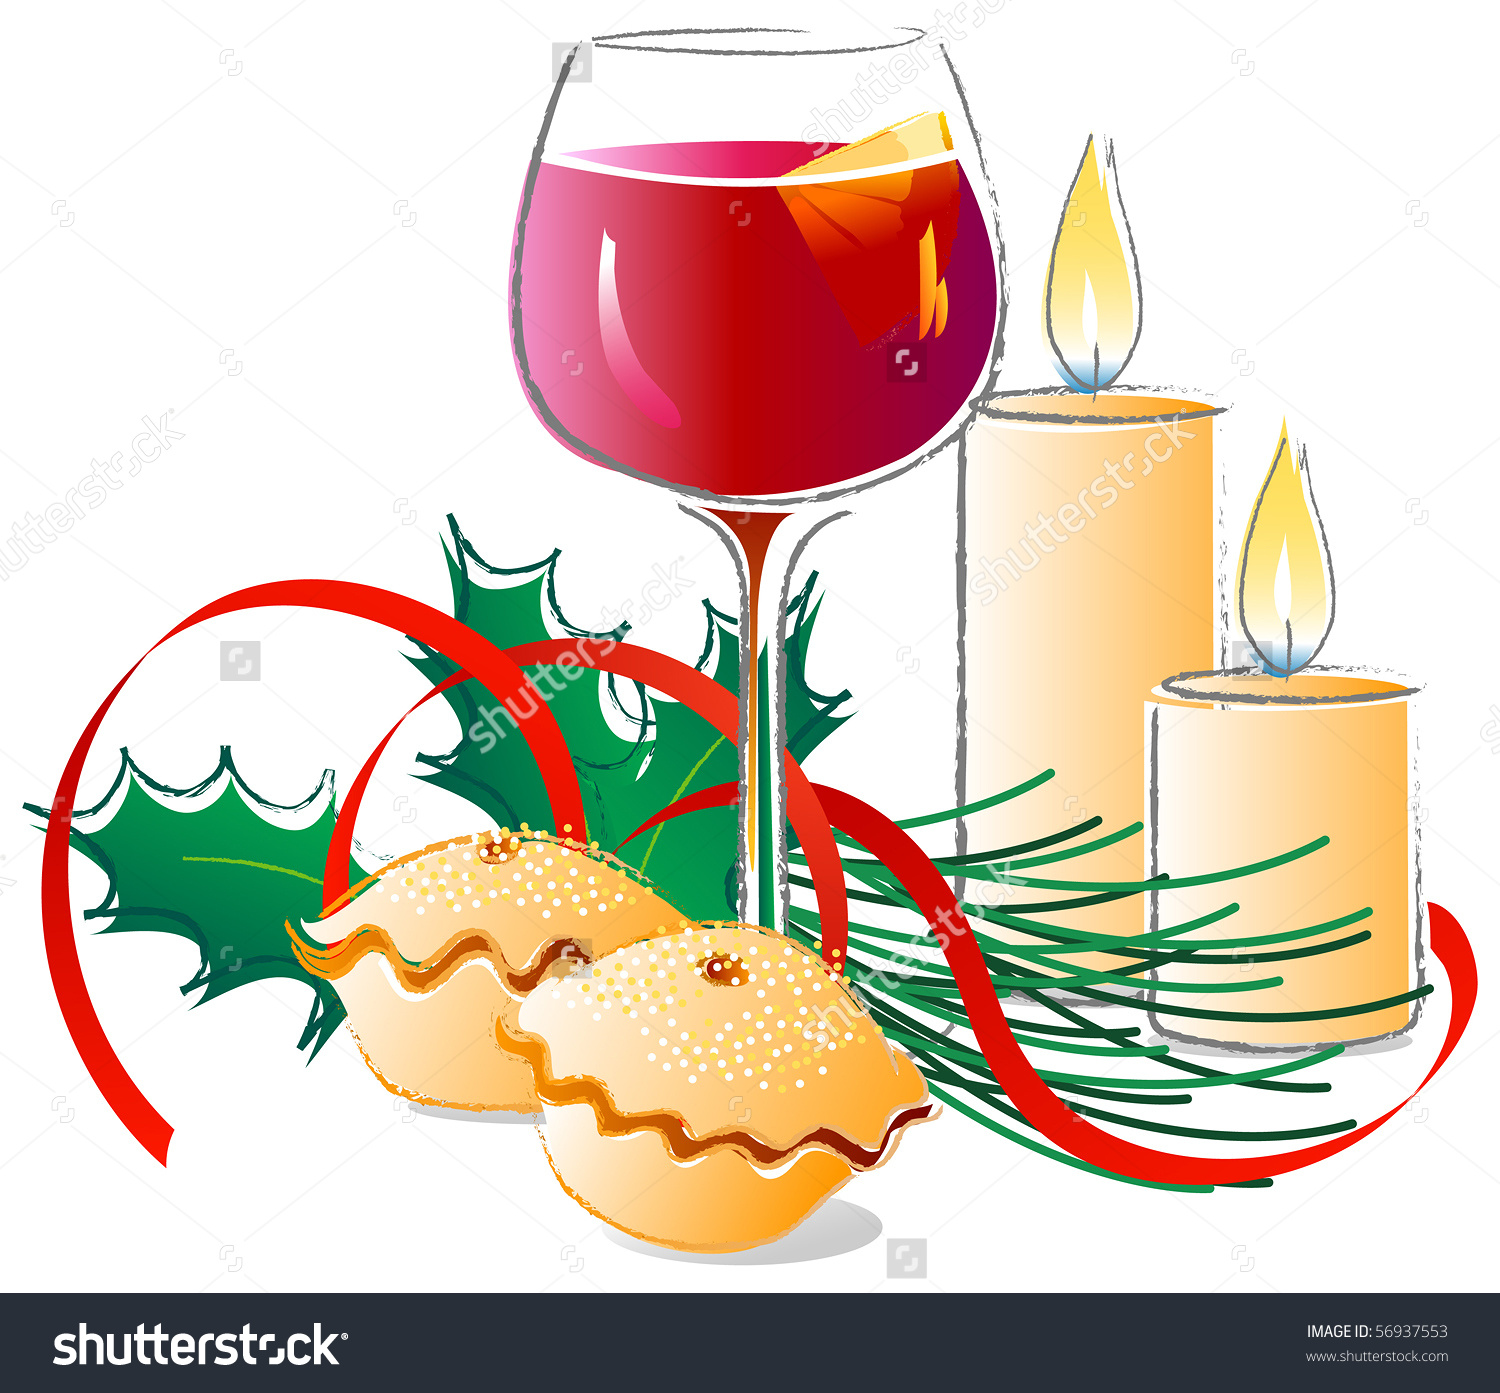 Mulled wine clipart.